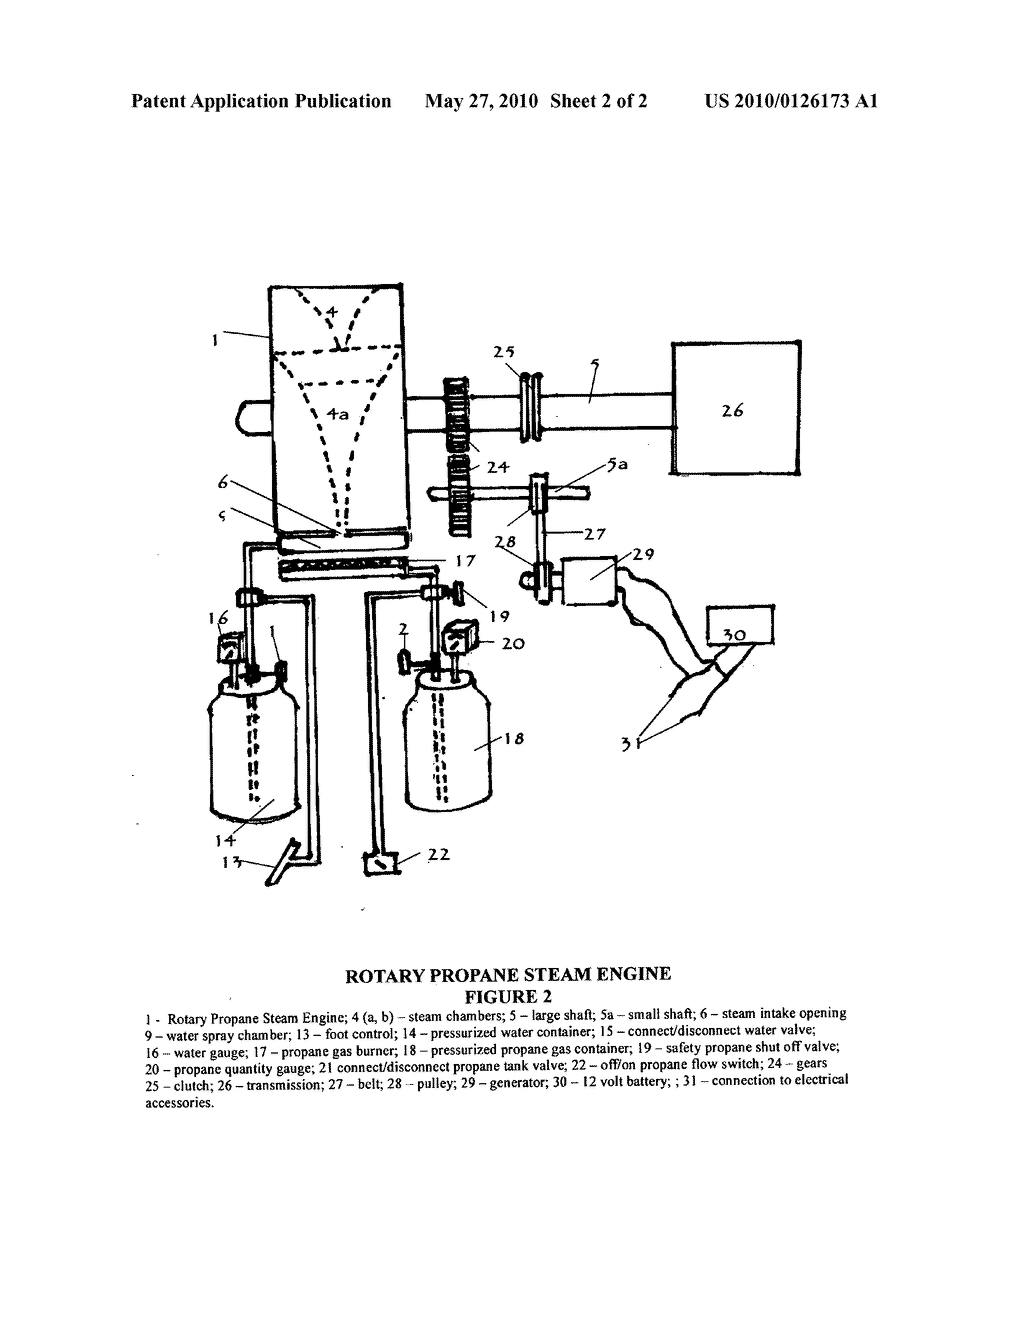 Rotary Propane Steam Engine Road Vehicle Diagram Schematic And Of Image 03